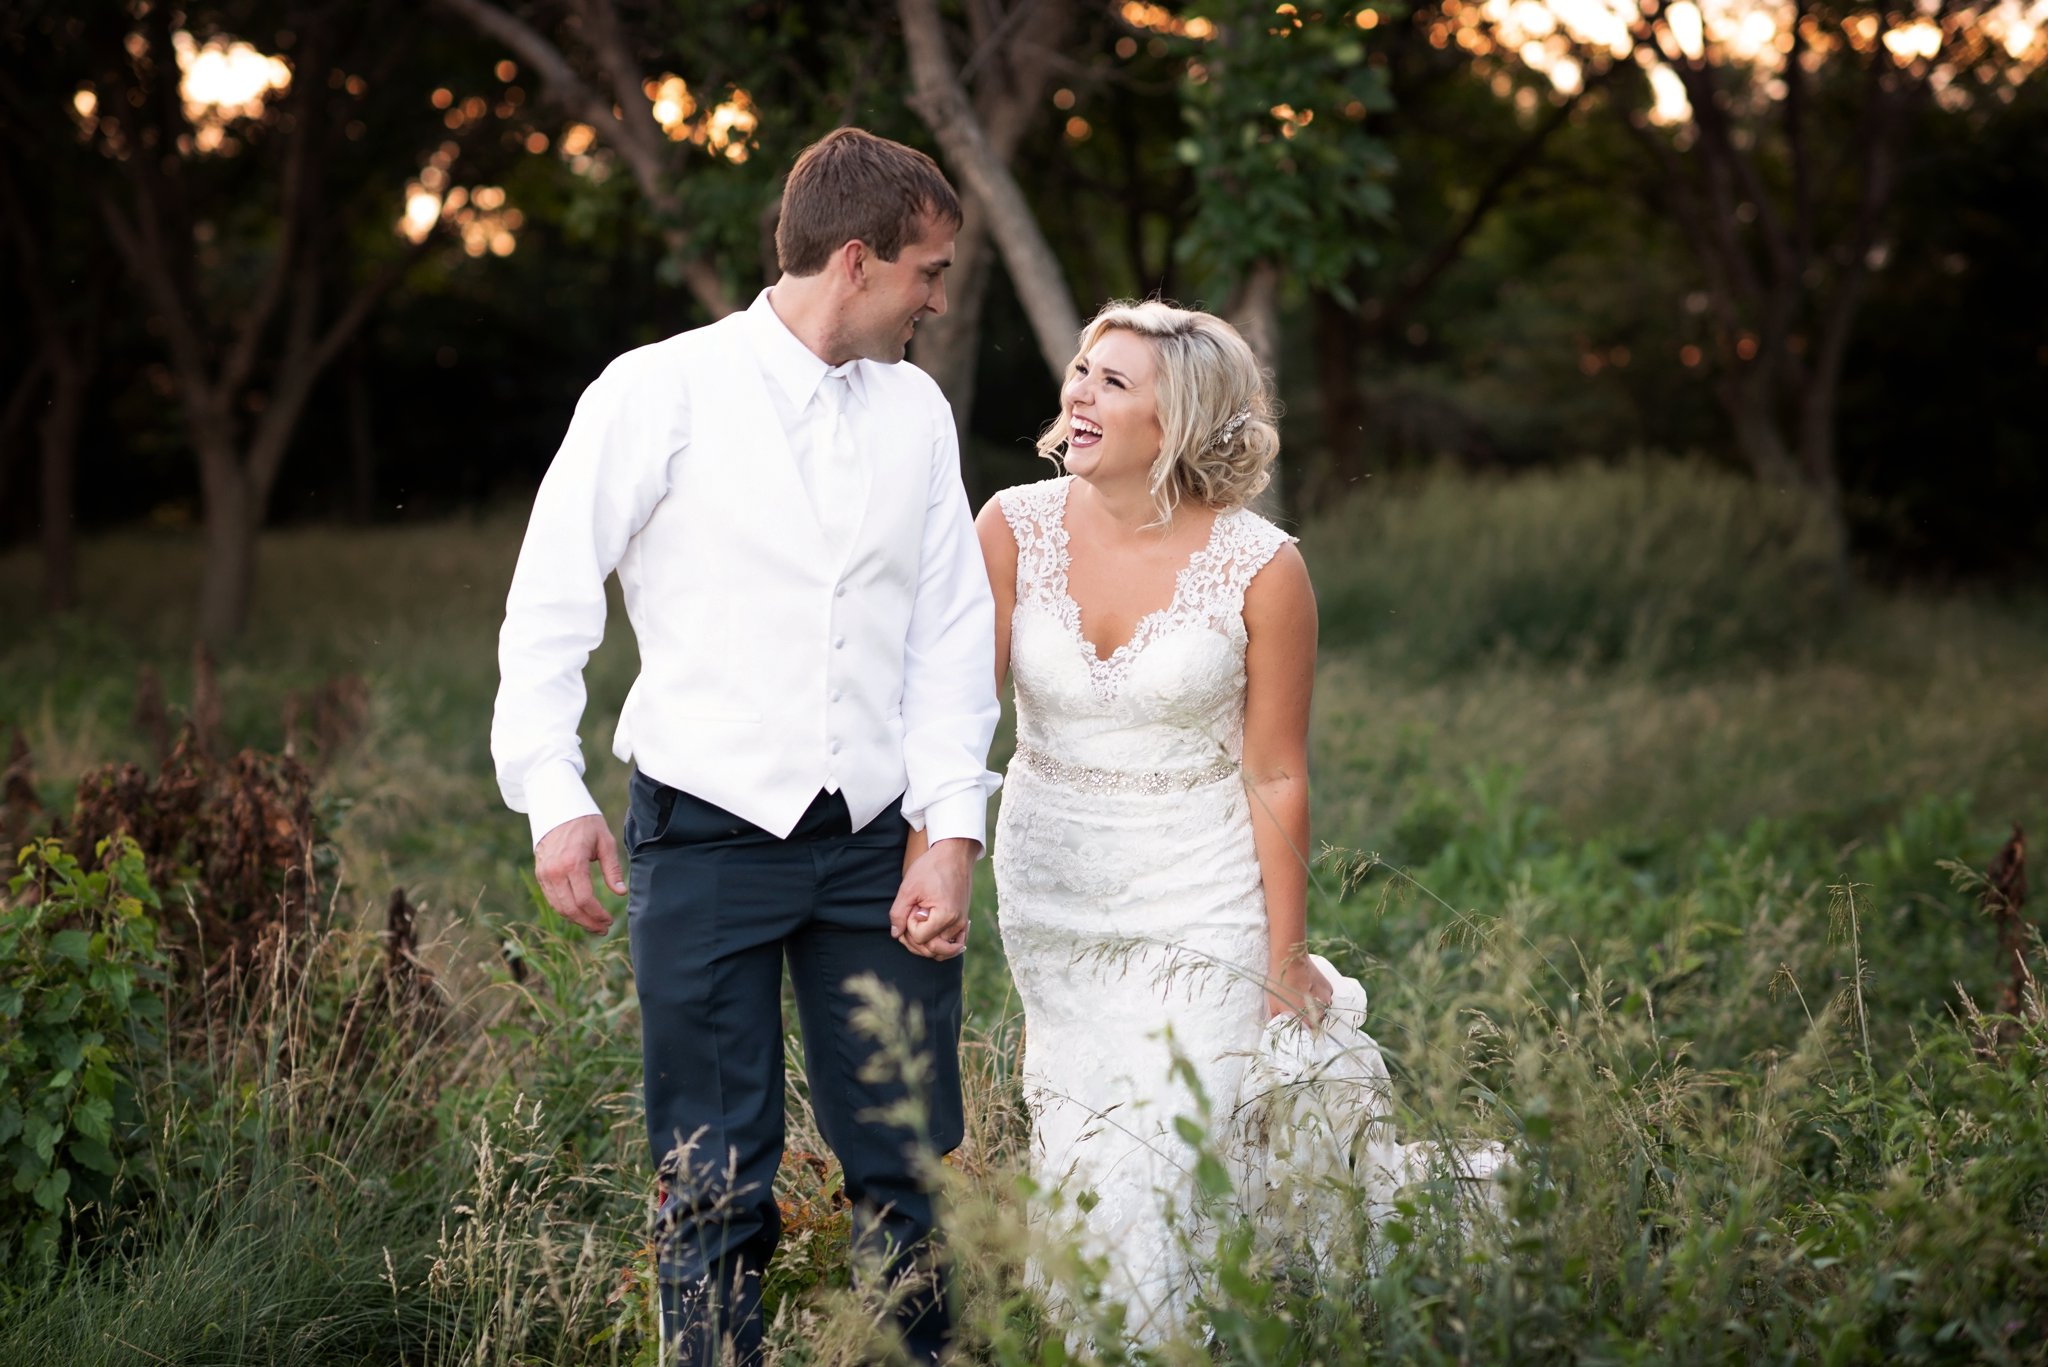 bride and groom walk through forest together